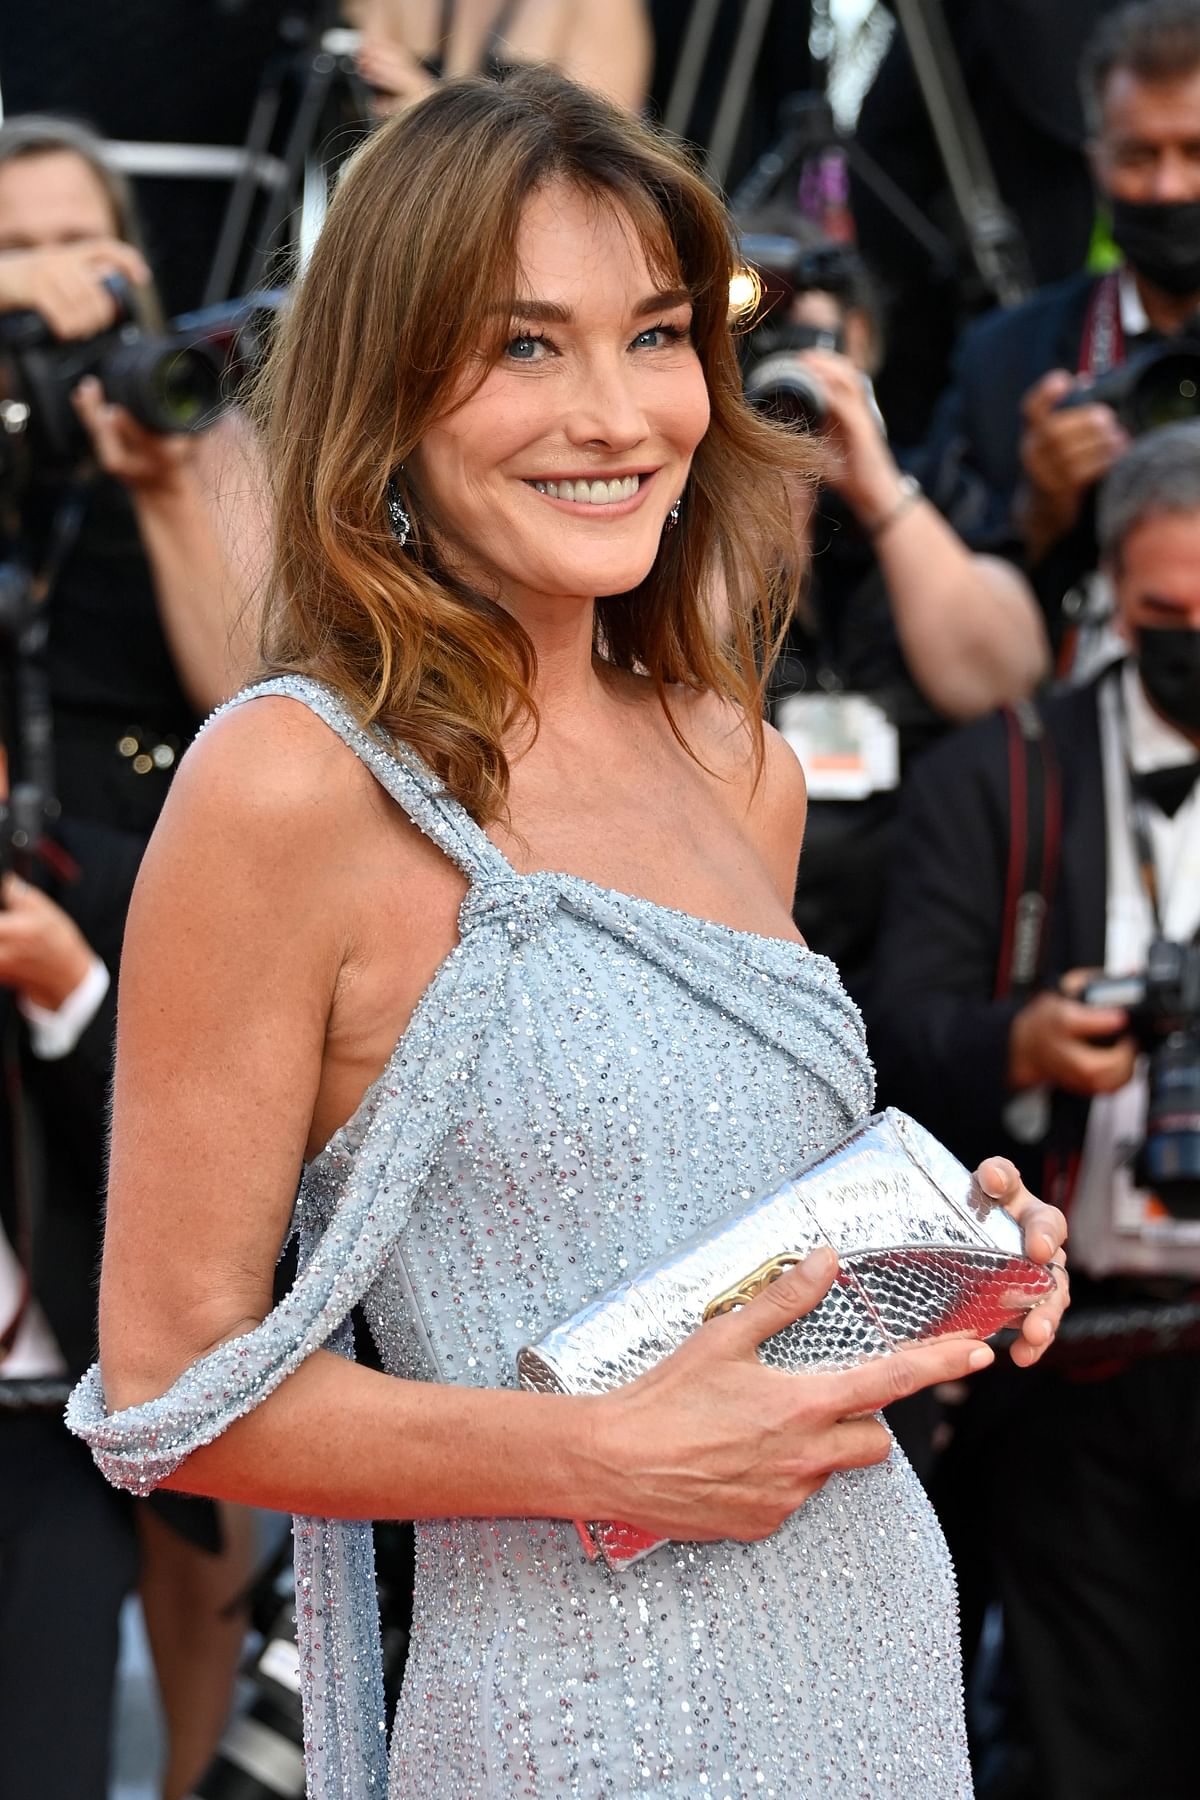 Cannes Film Festival 2021: Best and worst dressed celebs at the French Riviera